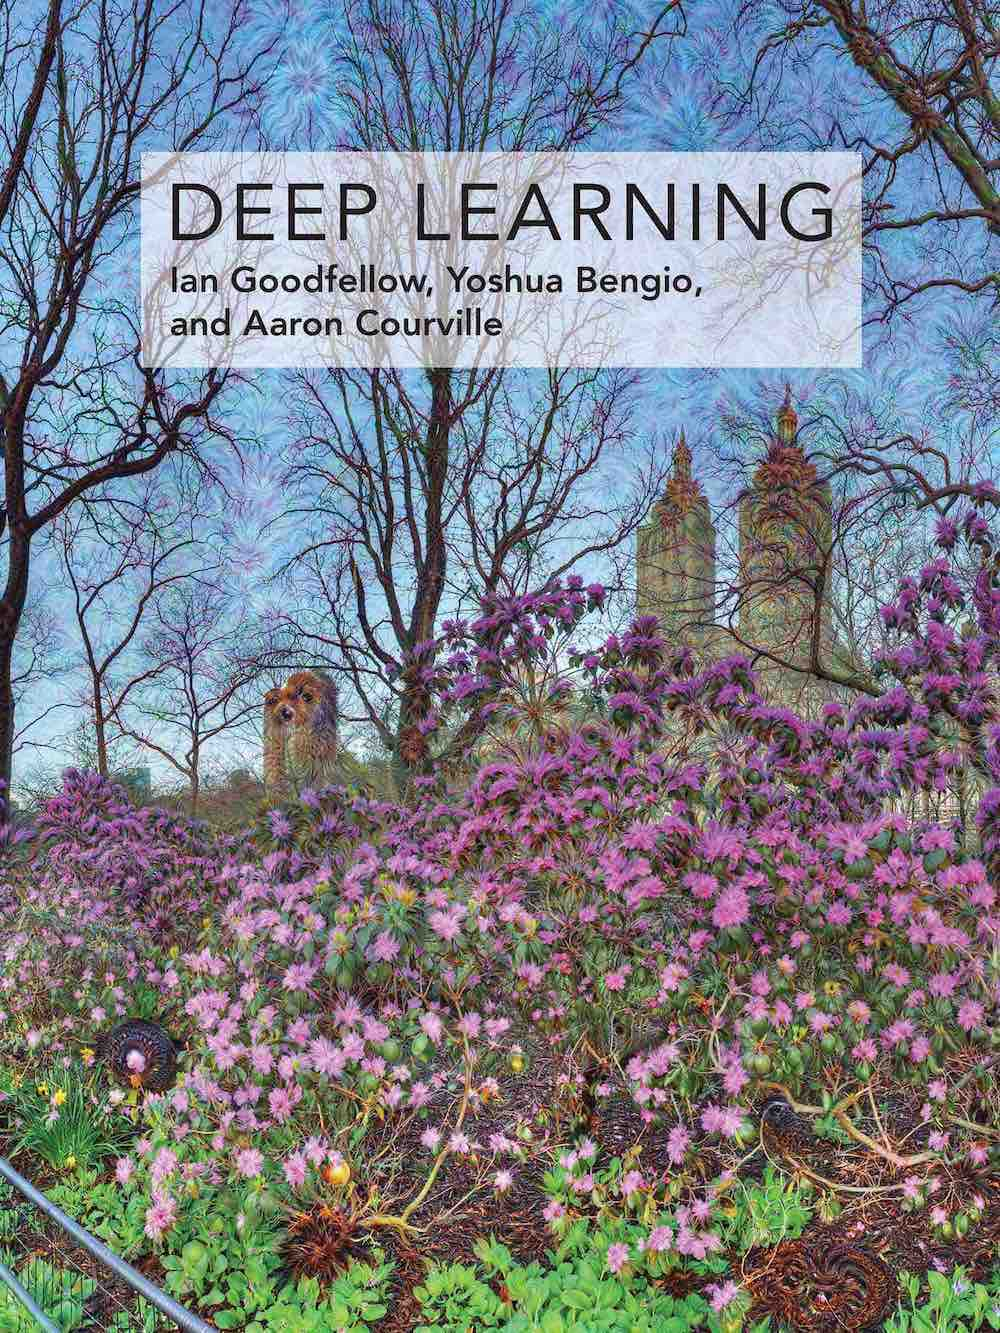 Cover of the deep learning book by Goodfellow, Bengio and Courville